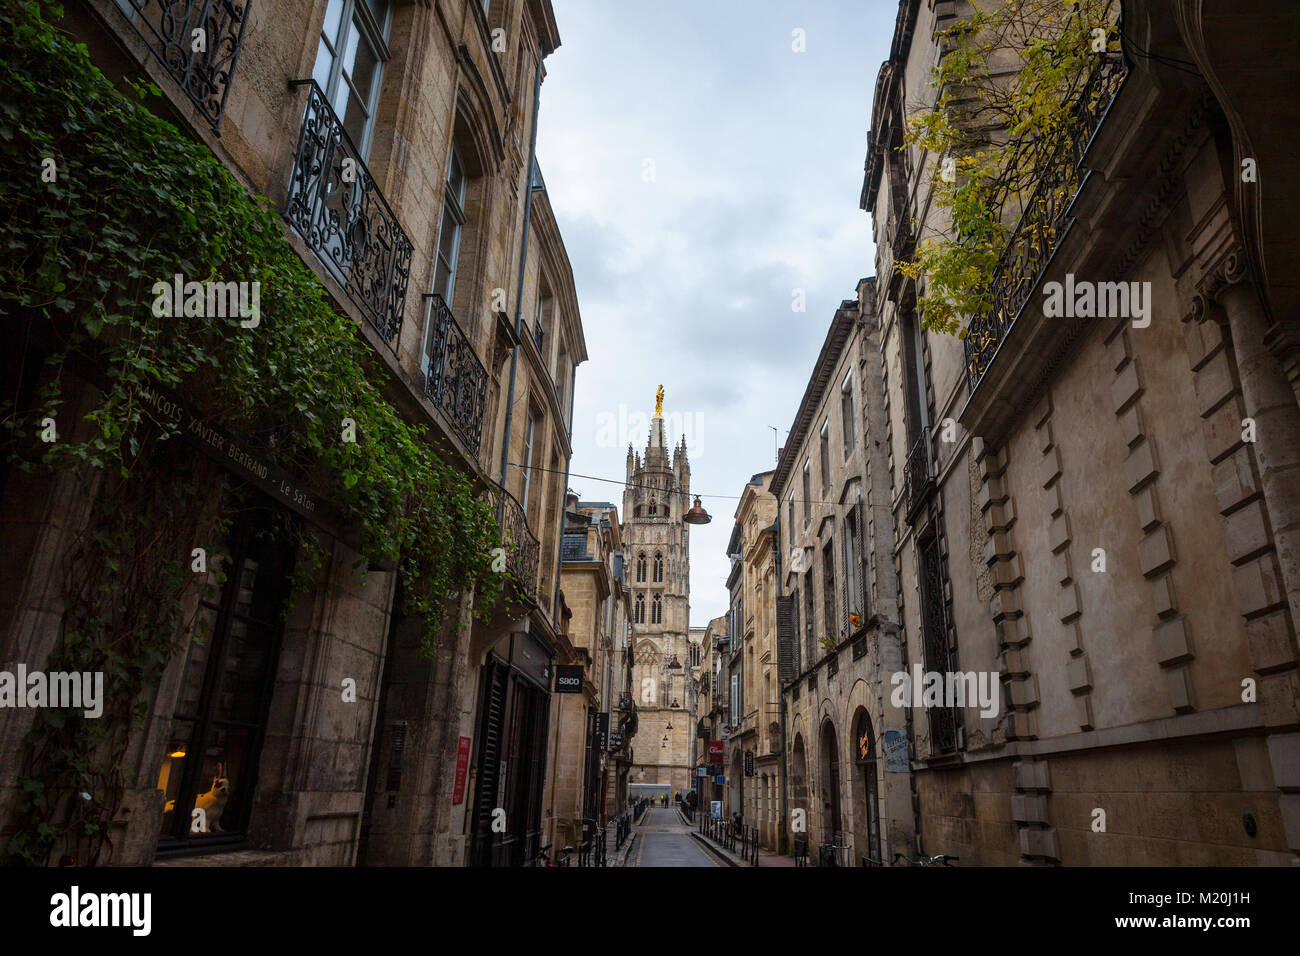 BORDEAUX, FRANCE - DECEMBER 26, 2017: Tour Pey Berland (Pey Berland tower) on Saint Andre Catehdral surrounded by - Stock Image